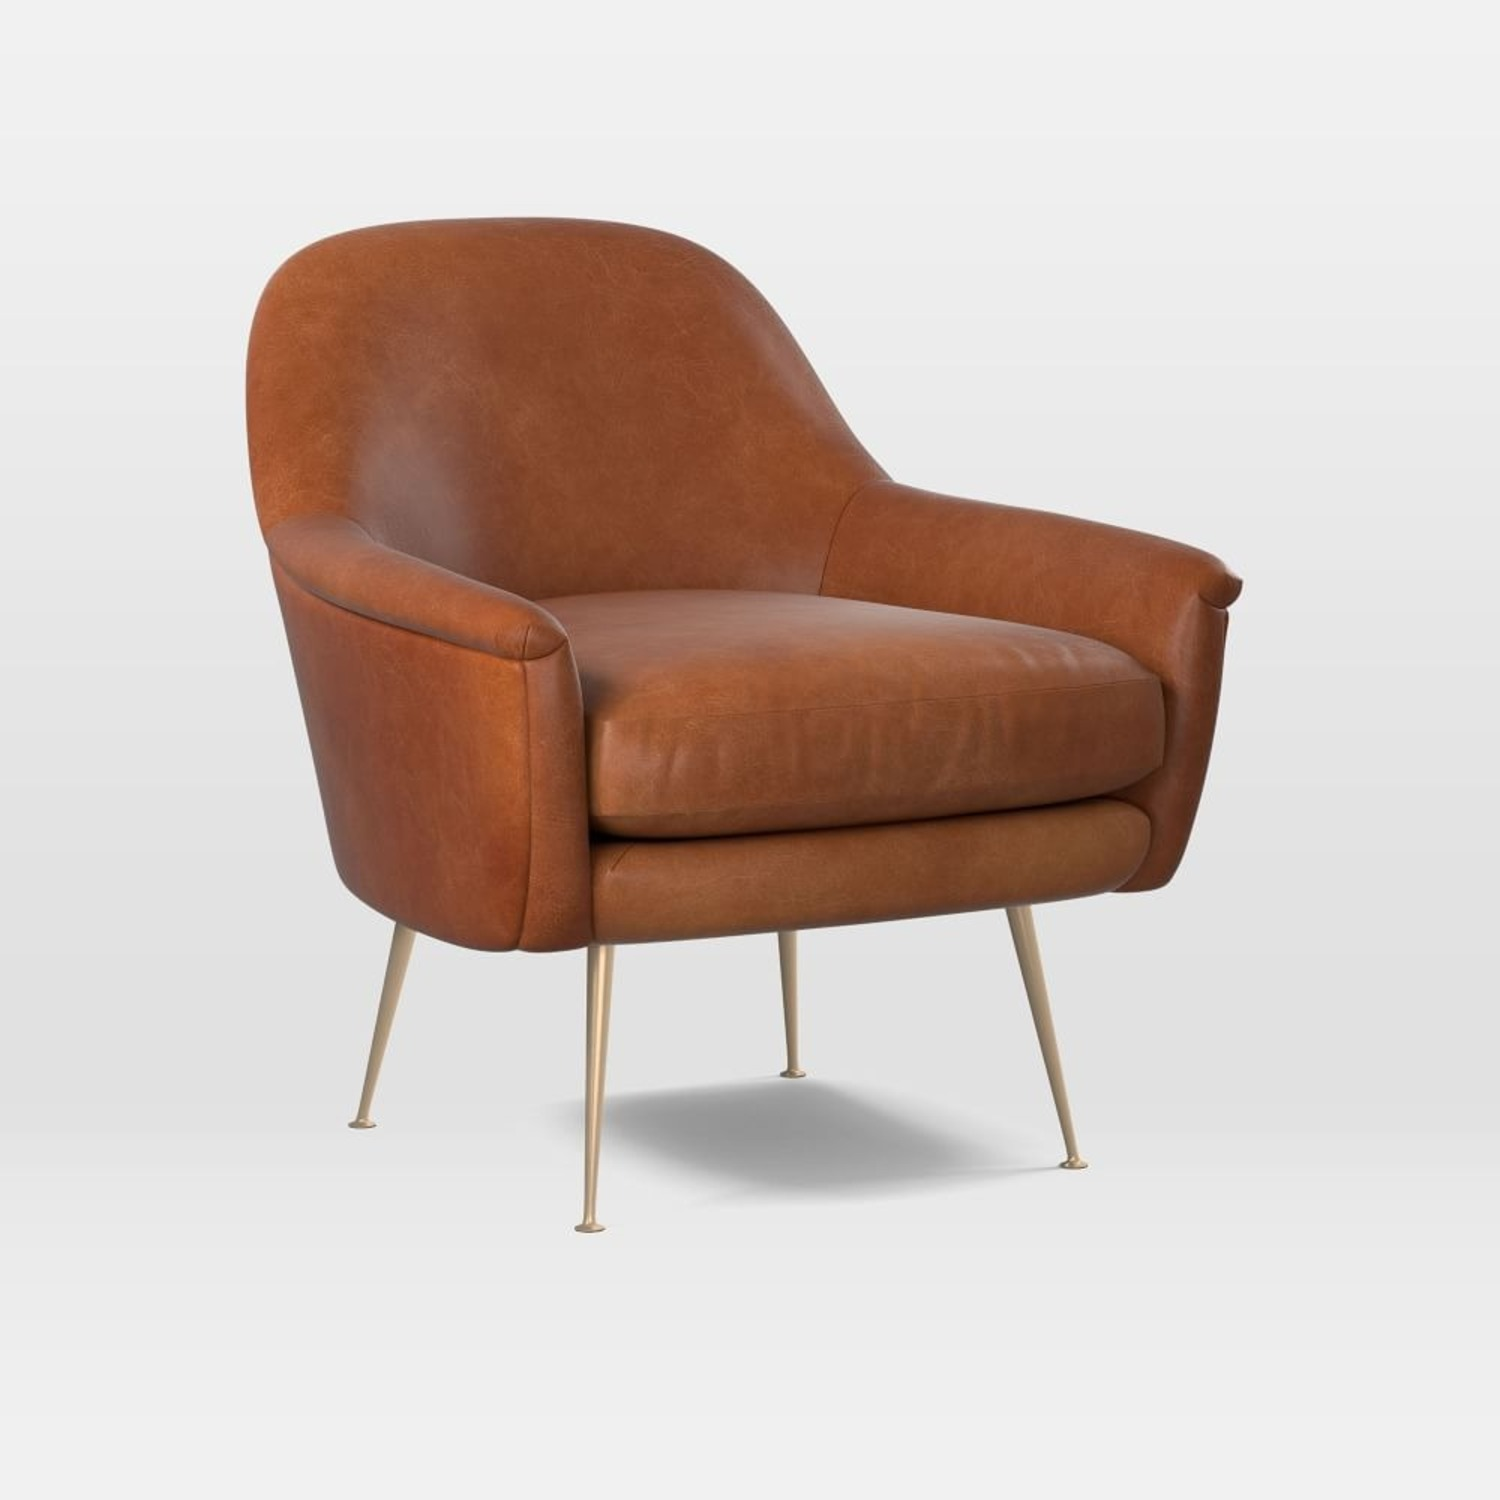 West Elm Phoebe Upholstered Mid-Century Chair - image-3